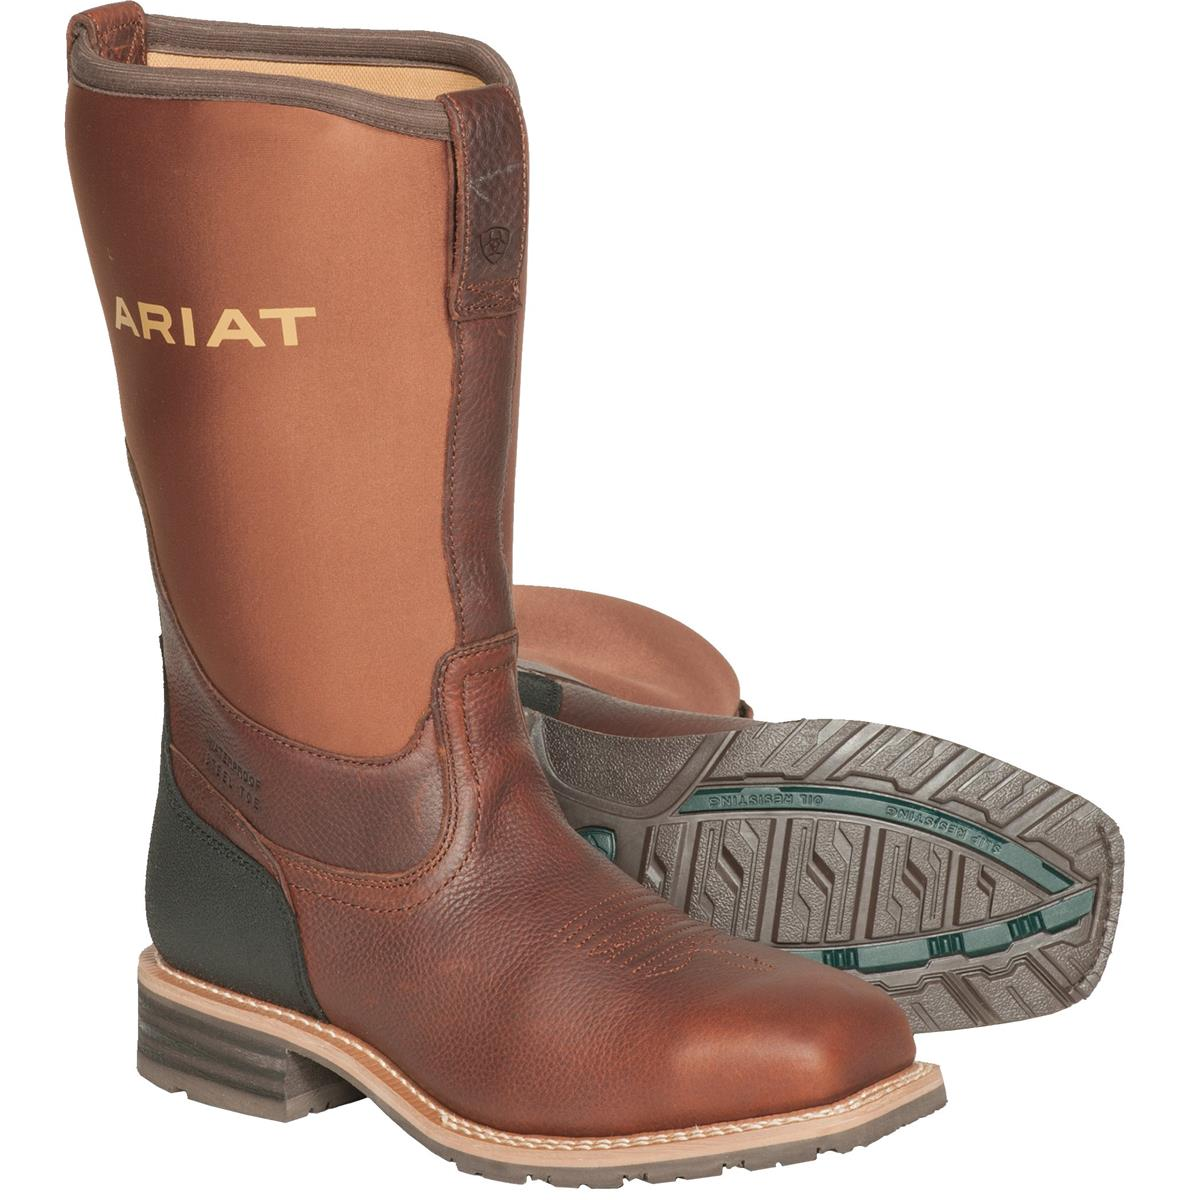 Ariat Hybrid Rancher All-Weather Steel Toe Work Boots